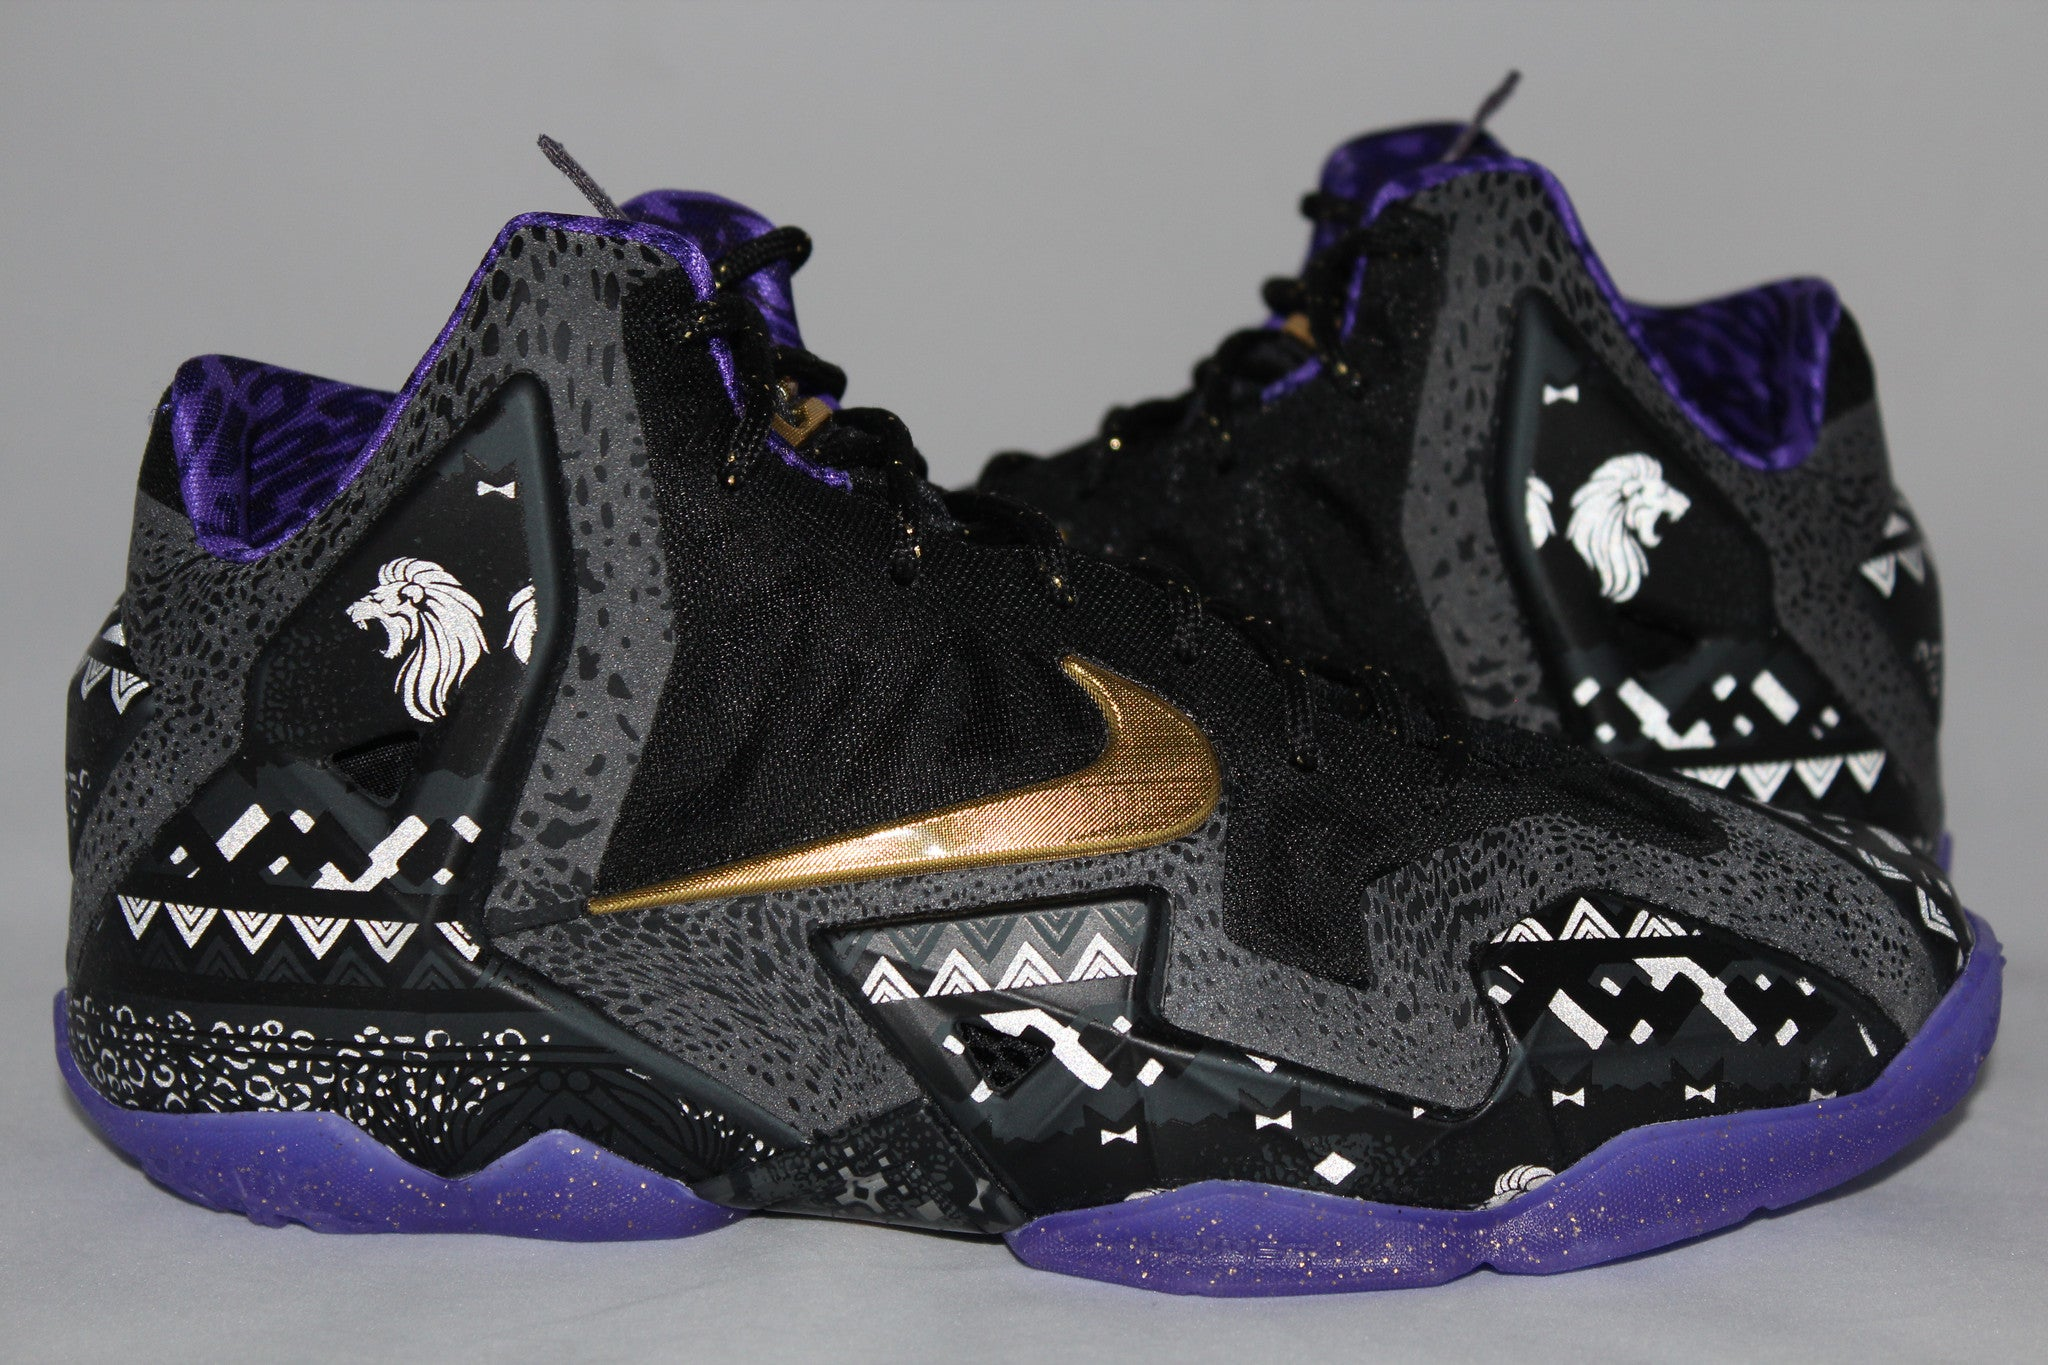 1db76c506d67 ... discount code for lebron 11 gs bhm black history month c83d9 da8d8